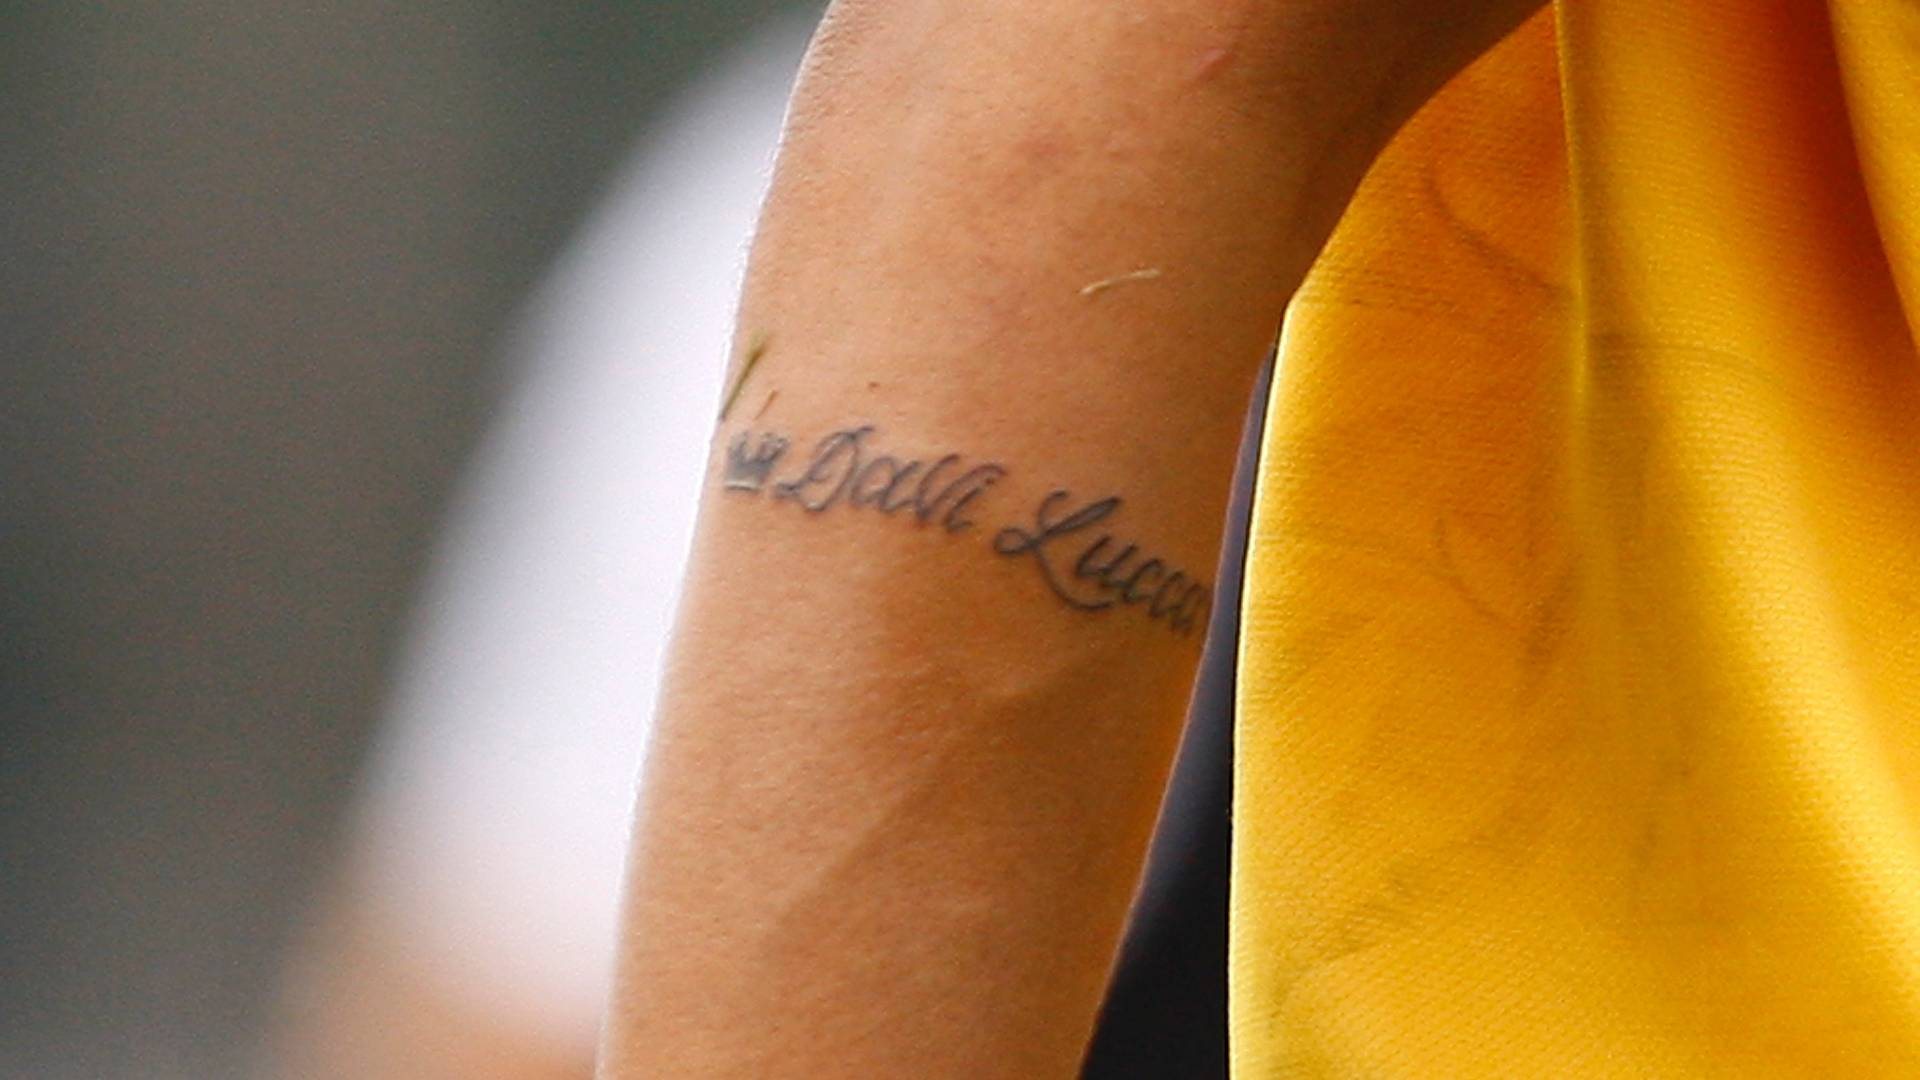 Neymar tatua nome do filho Davi Lucca no brao